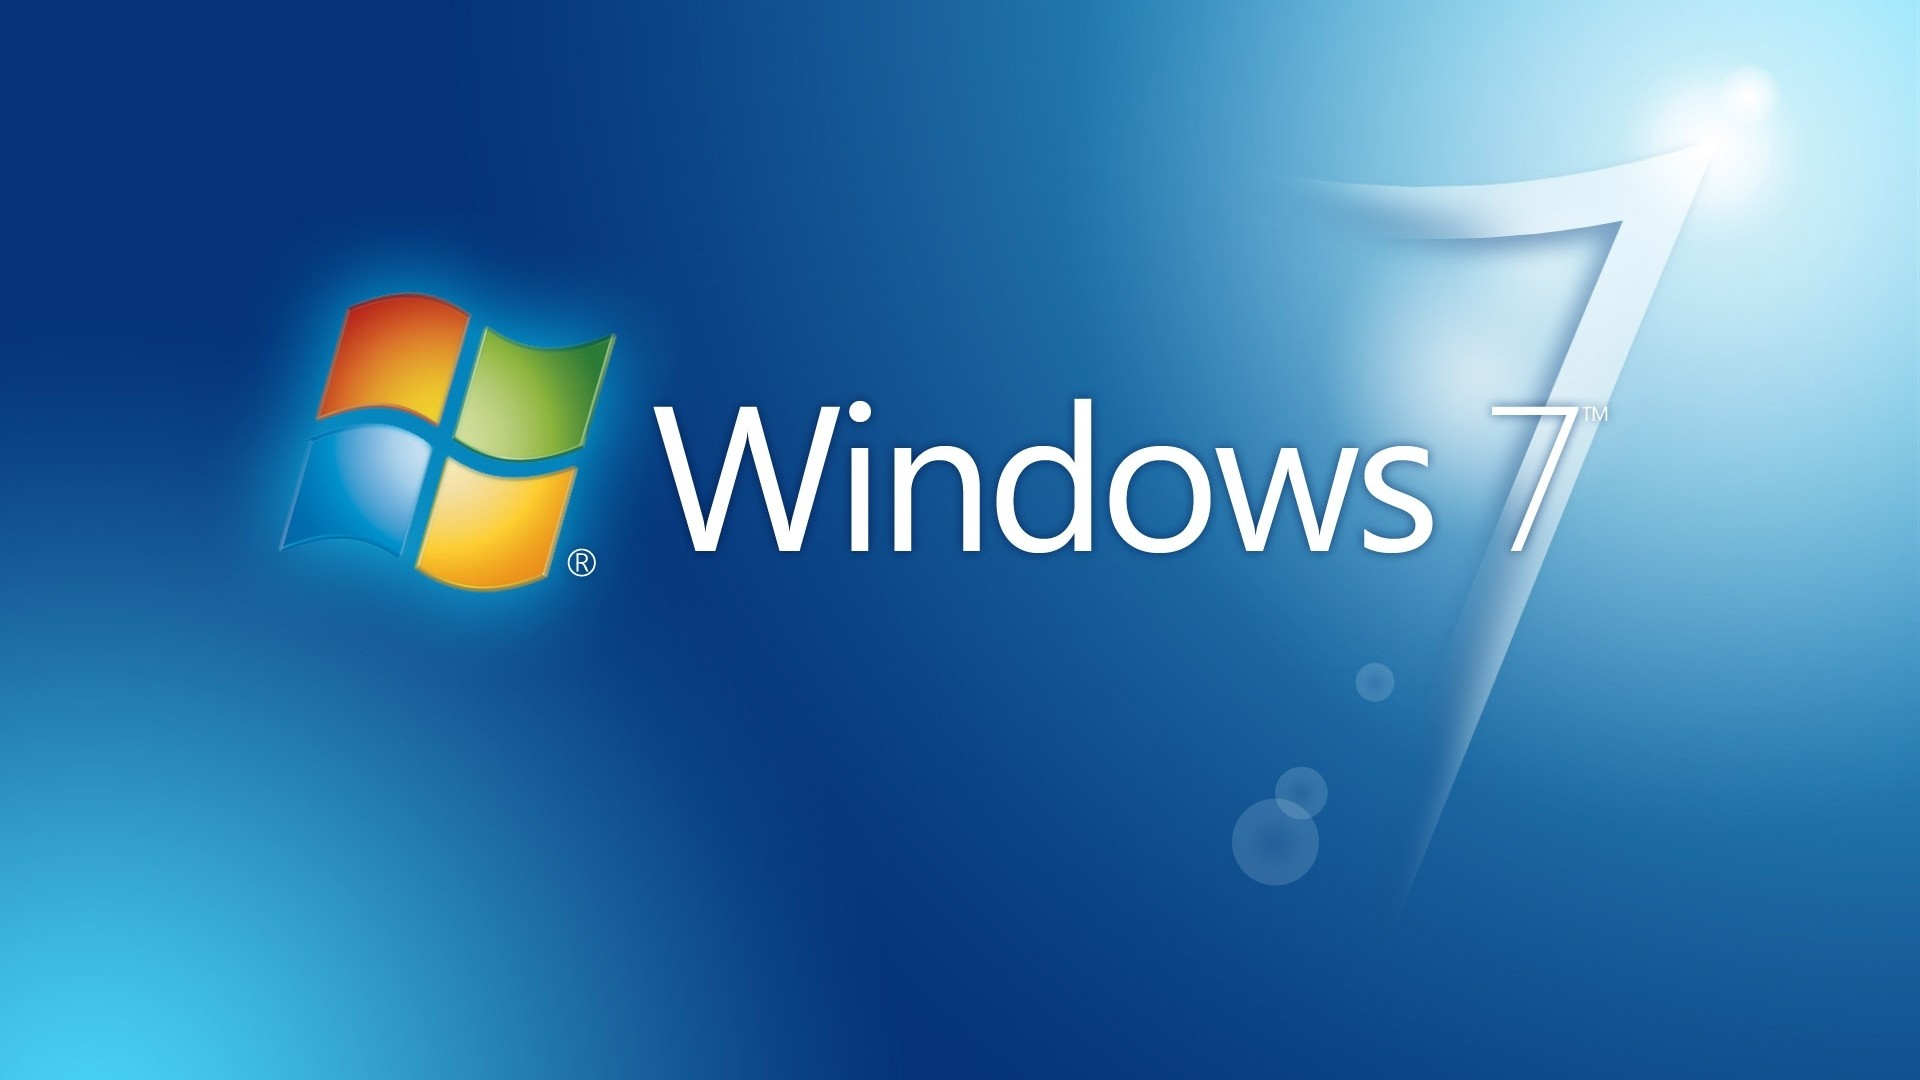 windows 7 wallpapers hd 80 images